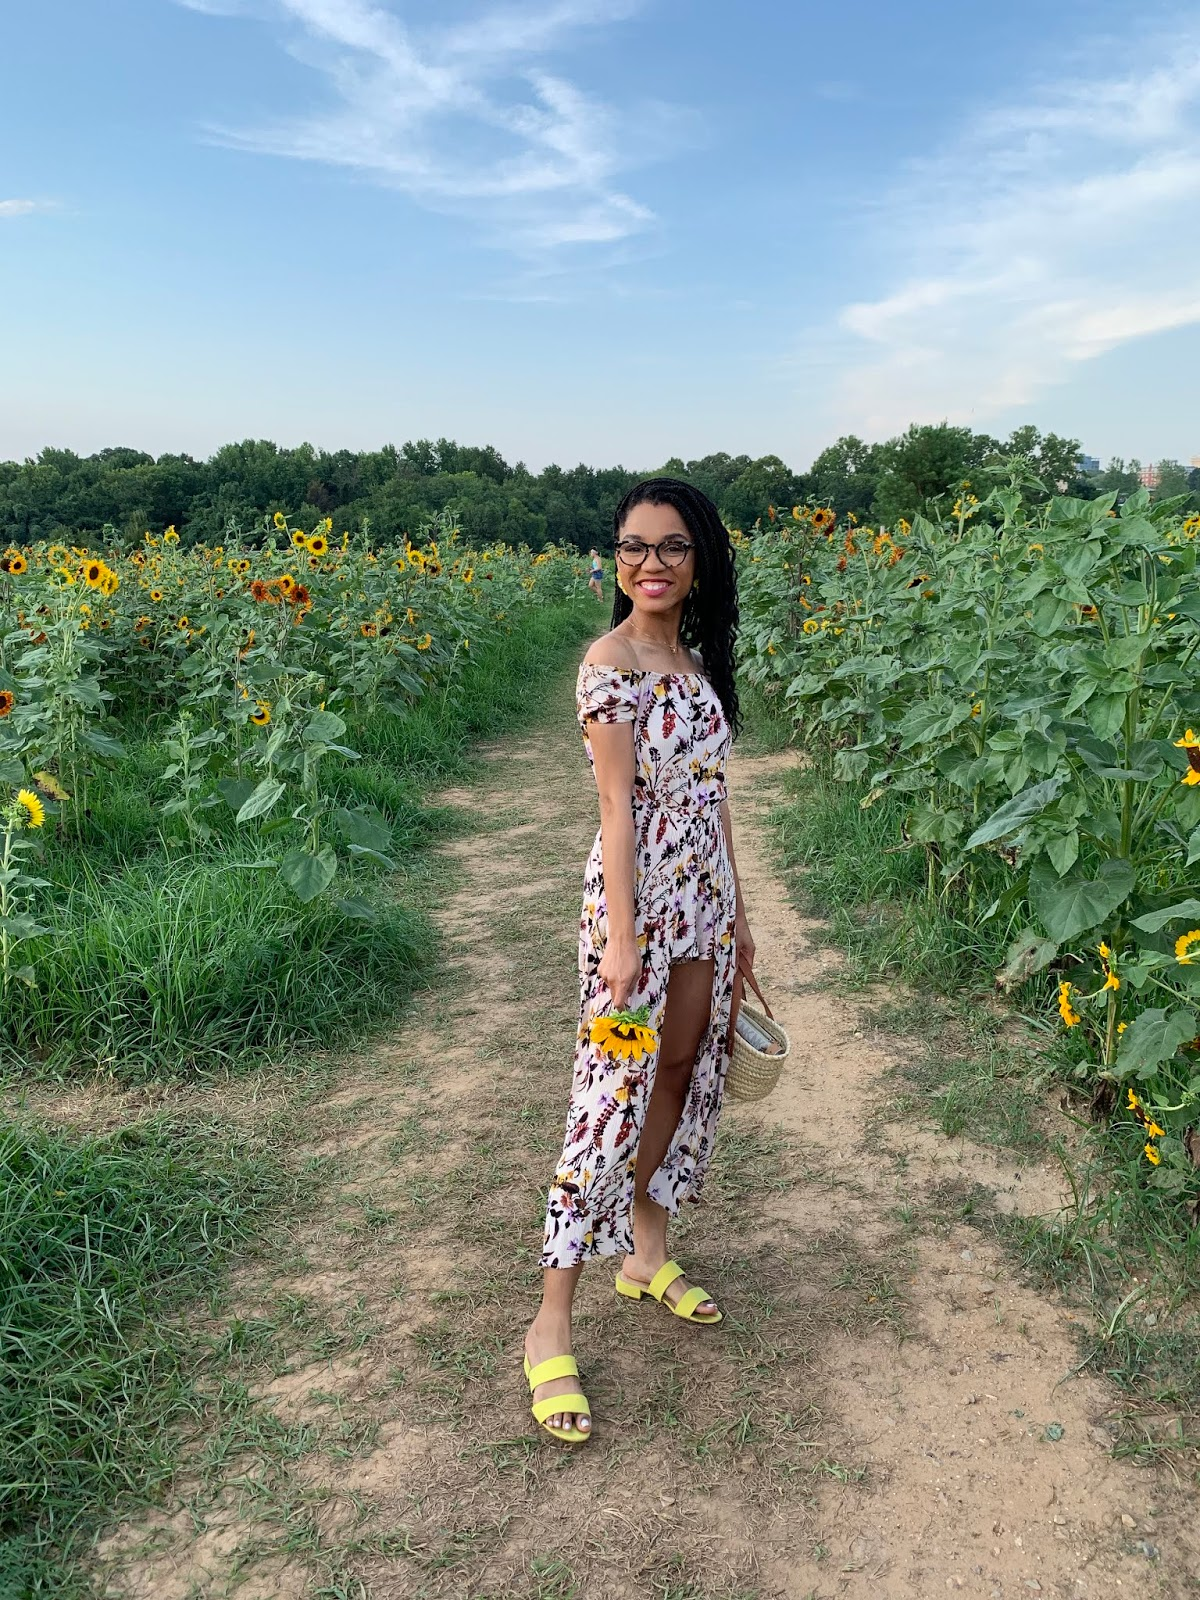 girl holding sunflower, sunflower photoshoot, sunflower field, flower jumpsuit, straw bag, summertime outfit, warby parker glasses, standing in sunflower field, yellow sandals, fashion blogger